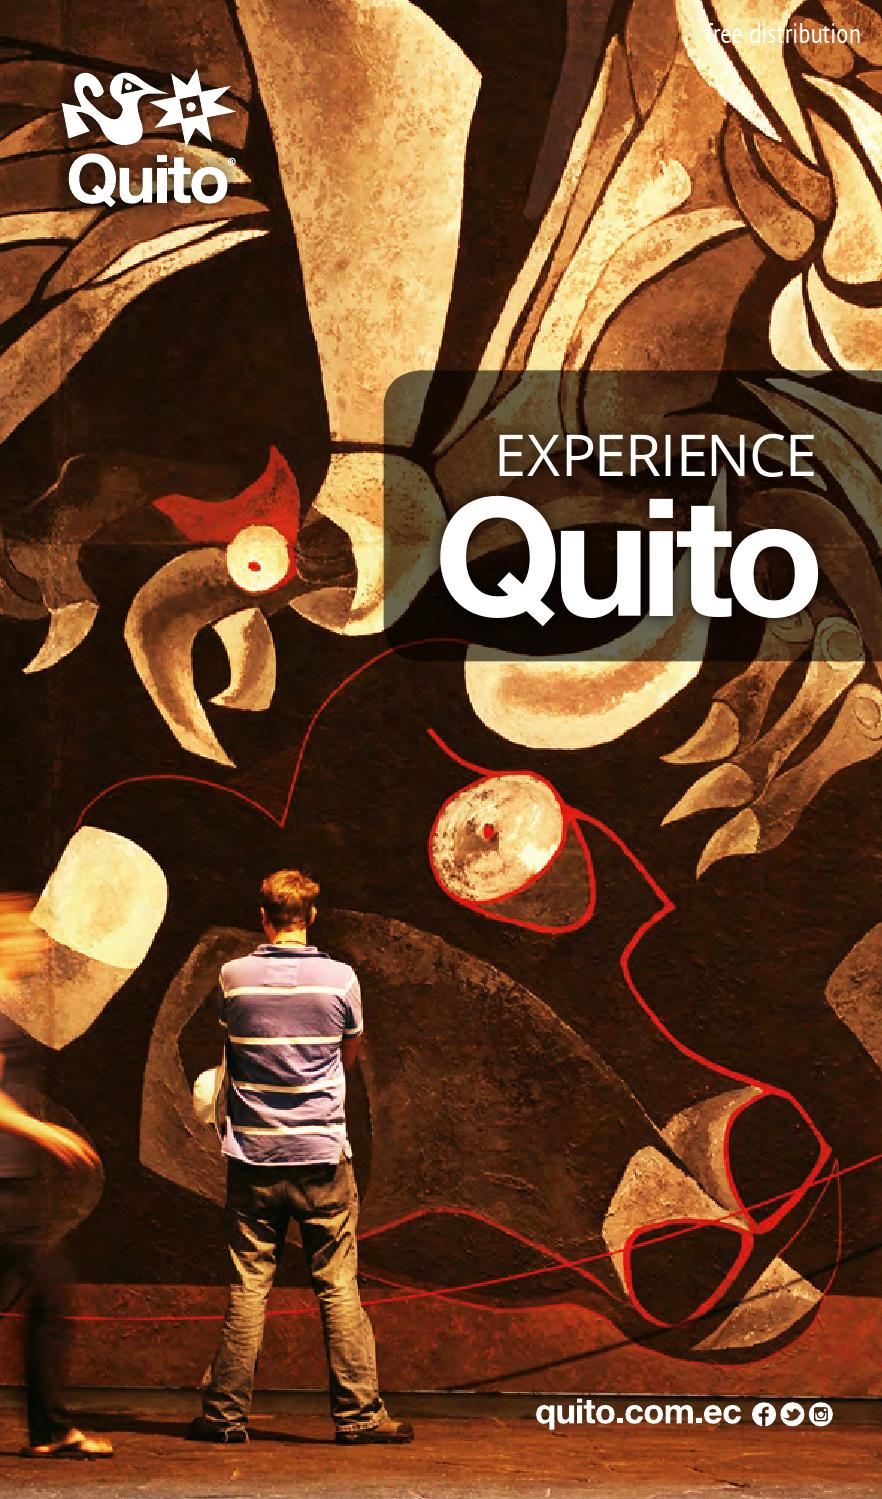 Experience Quito by Quito Turismo - issuu